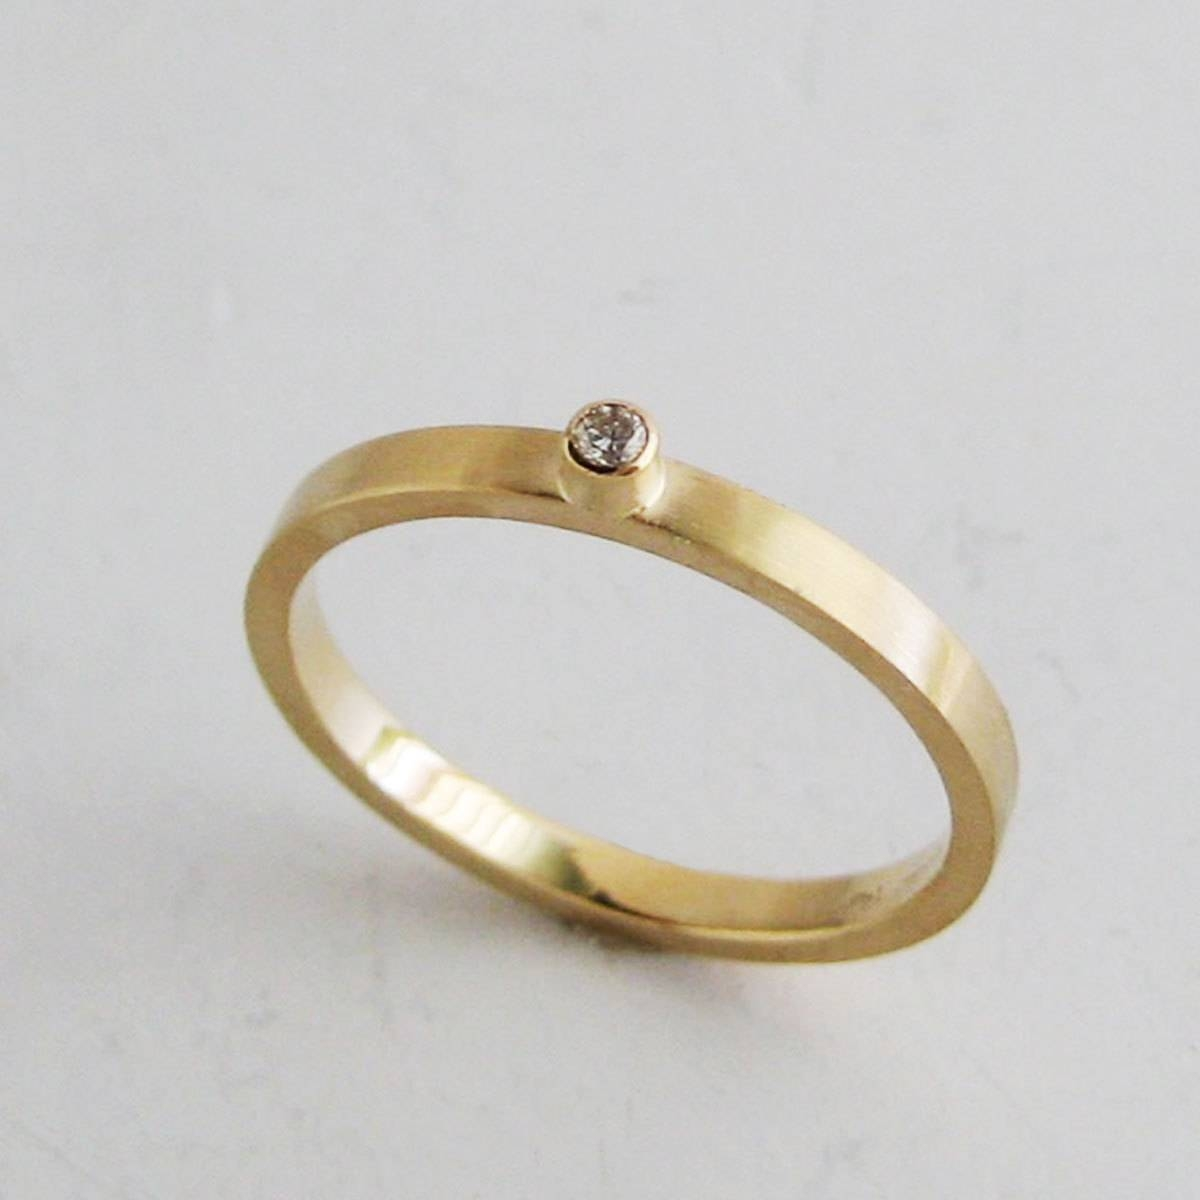 Small Diamond Ring2Mm Gold Band With Bezel Set For Small Diamond Wedding Bands (View 12 of 15)